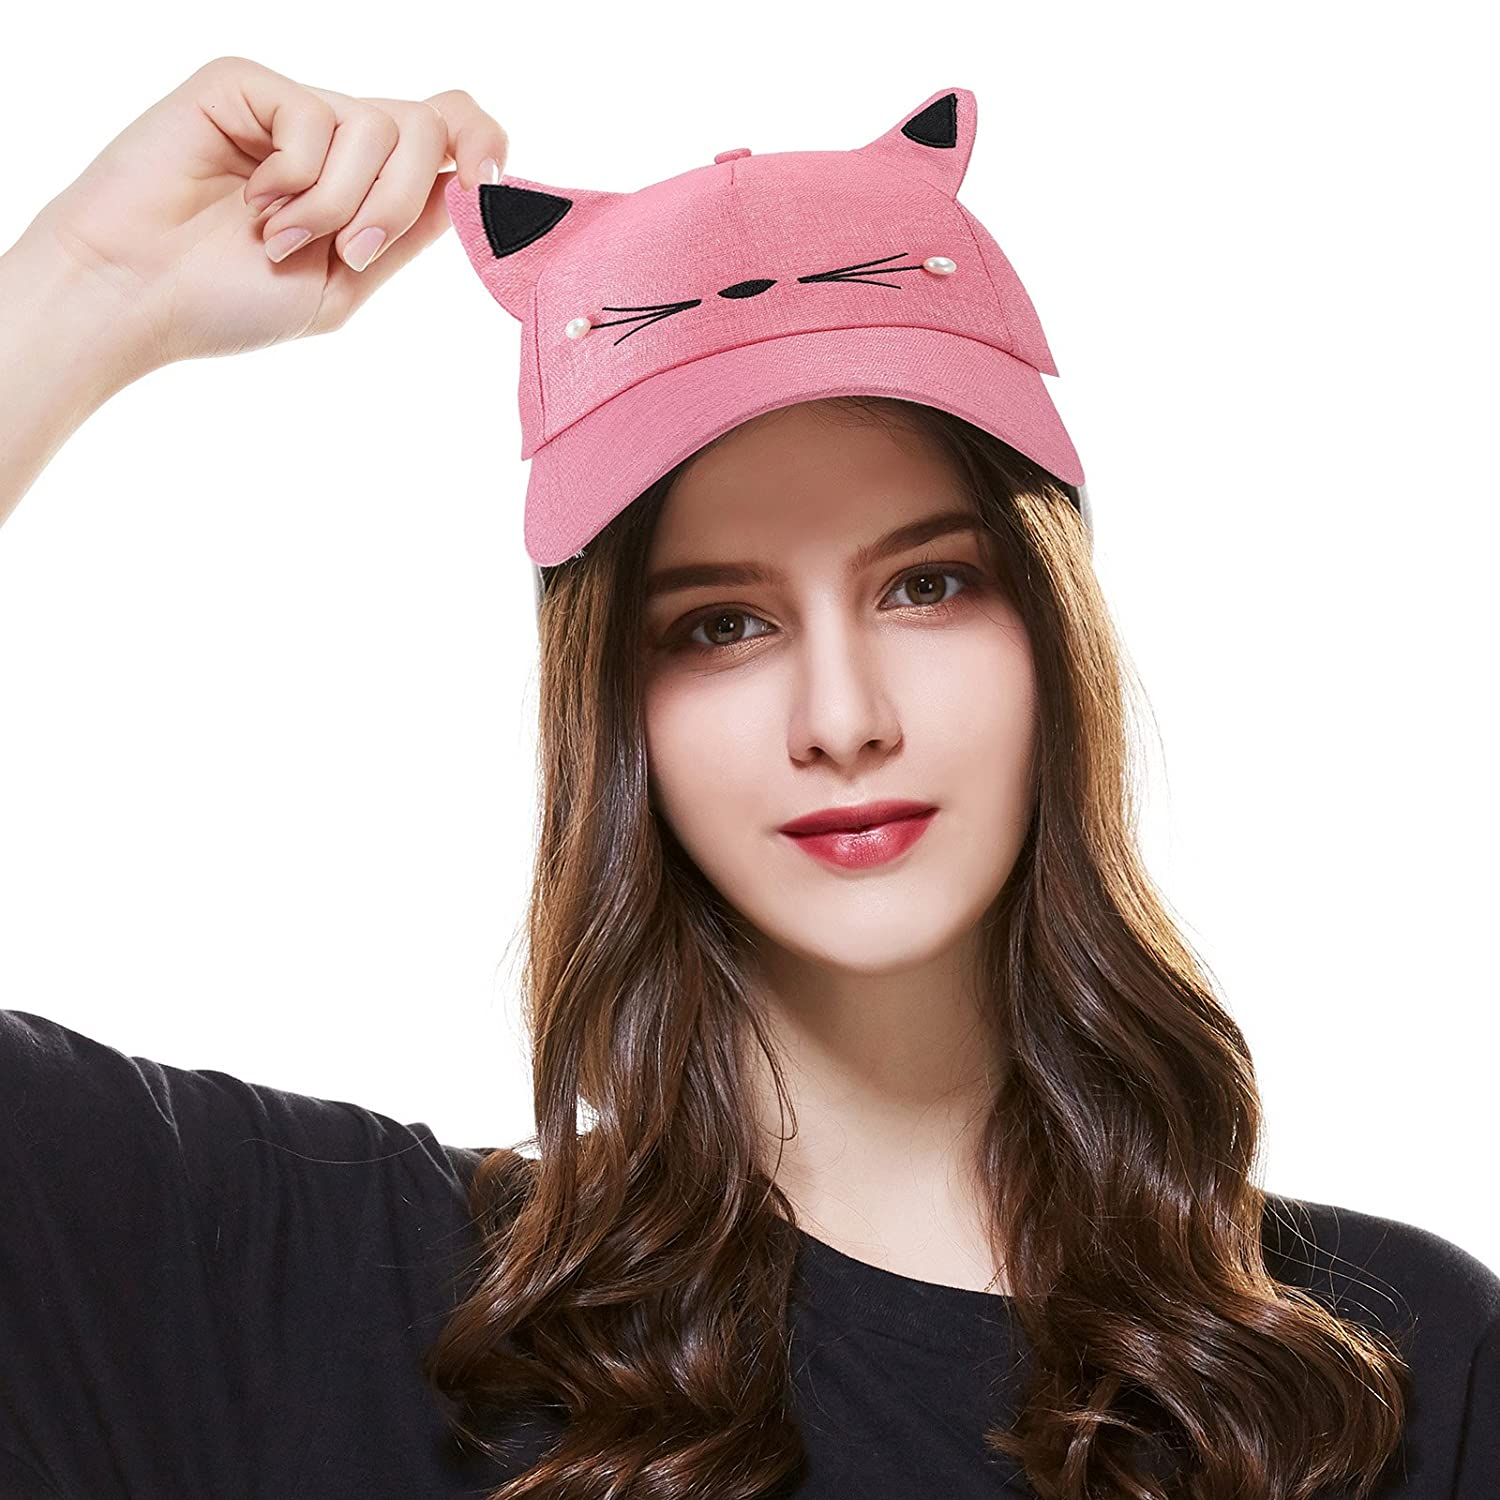 Kajeer Women Cute Cat Adjustable Baseball Cap Hat